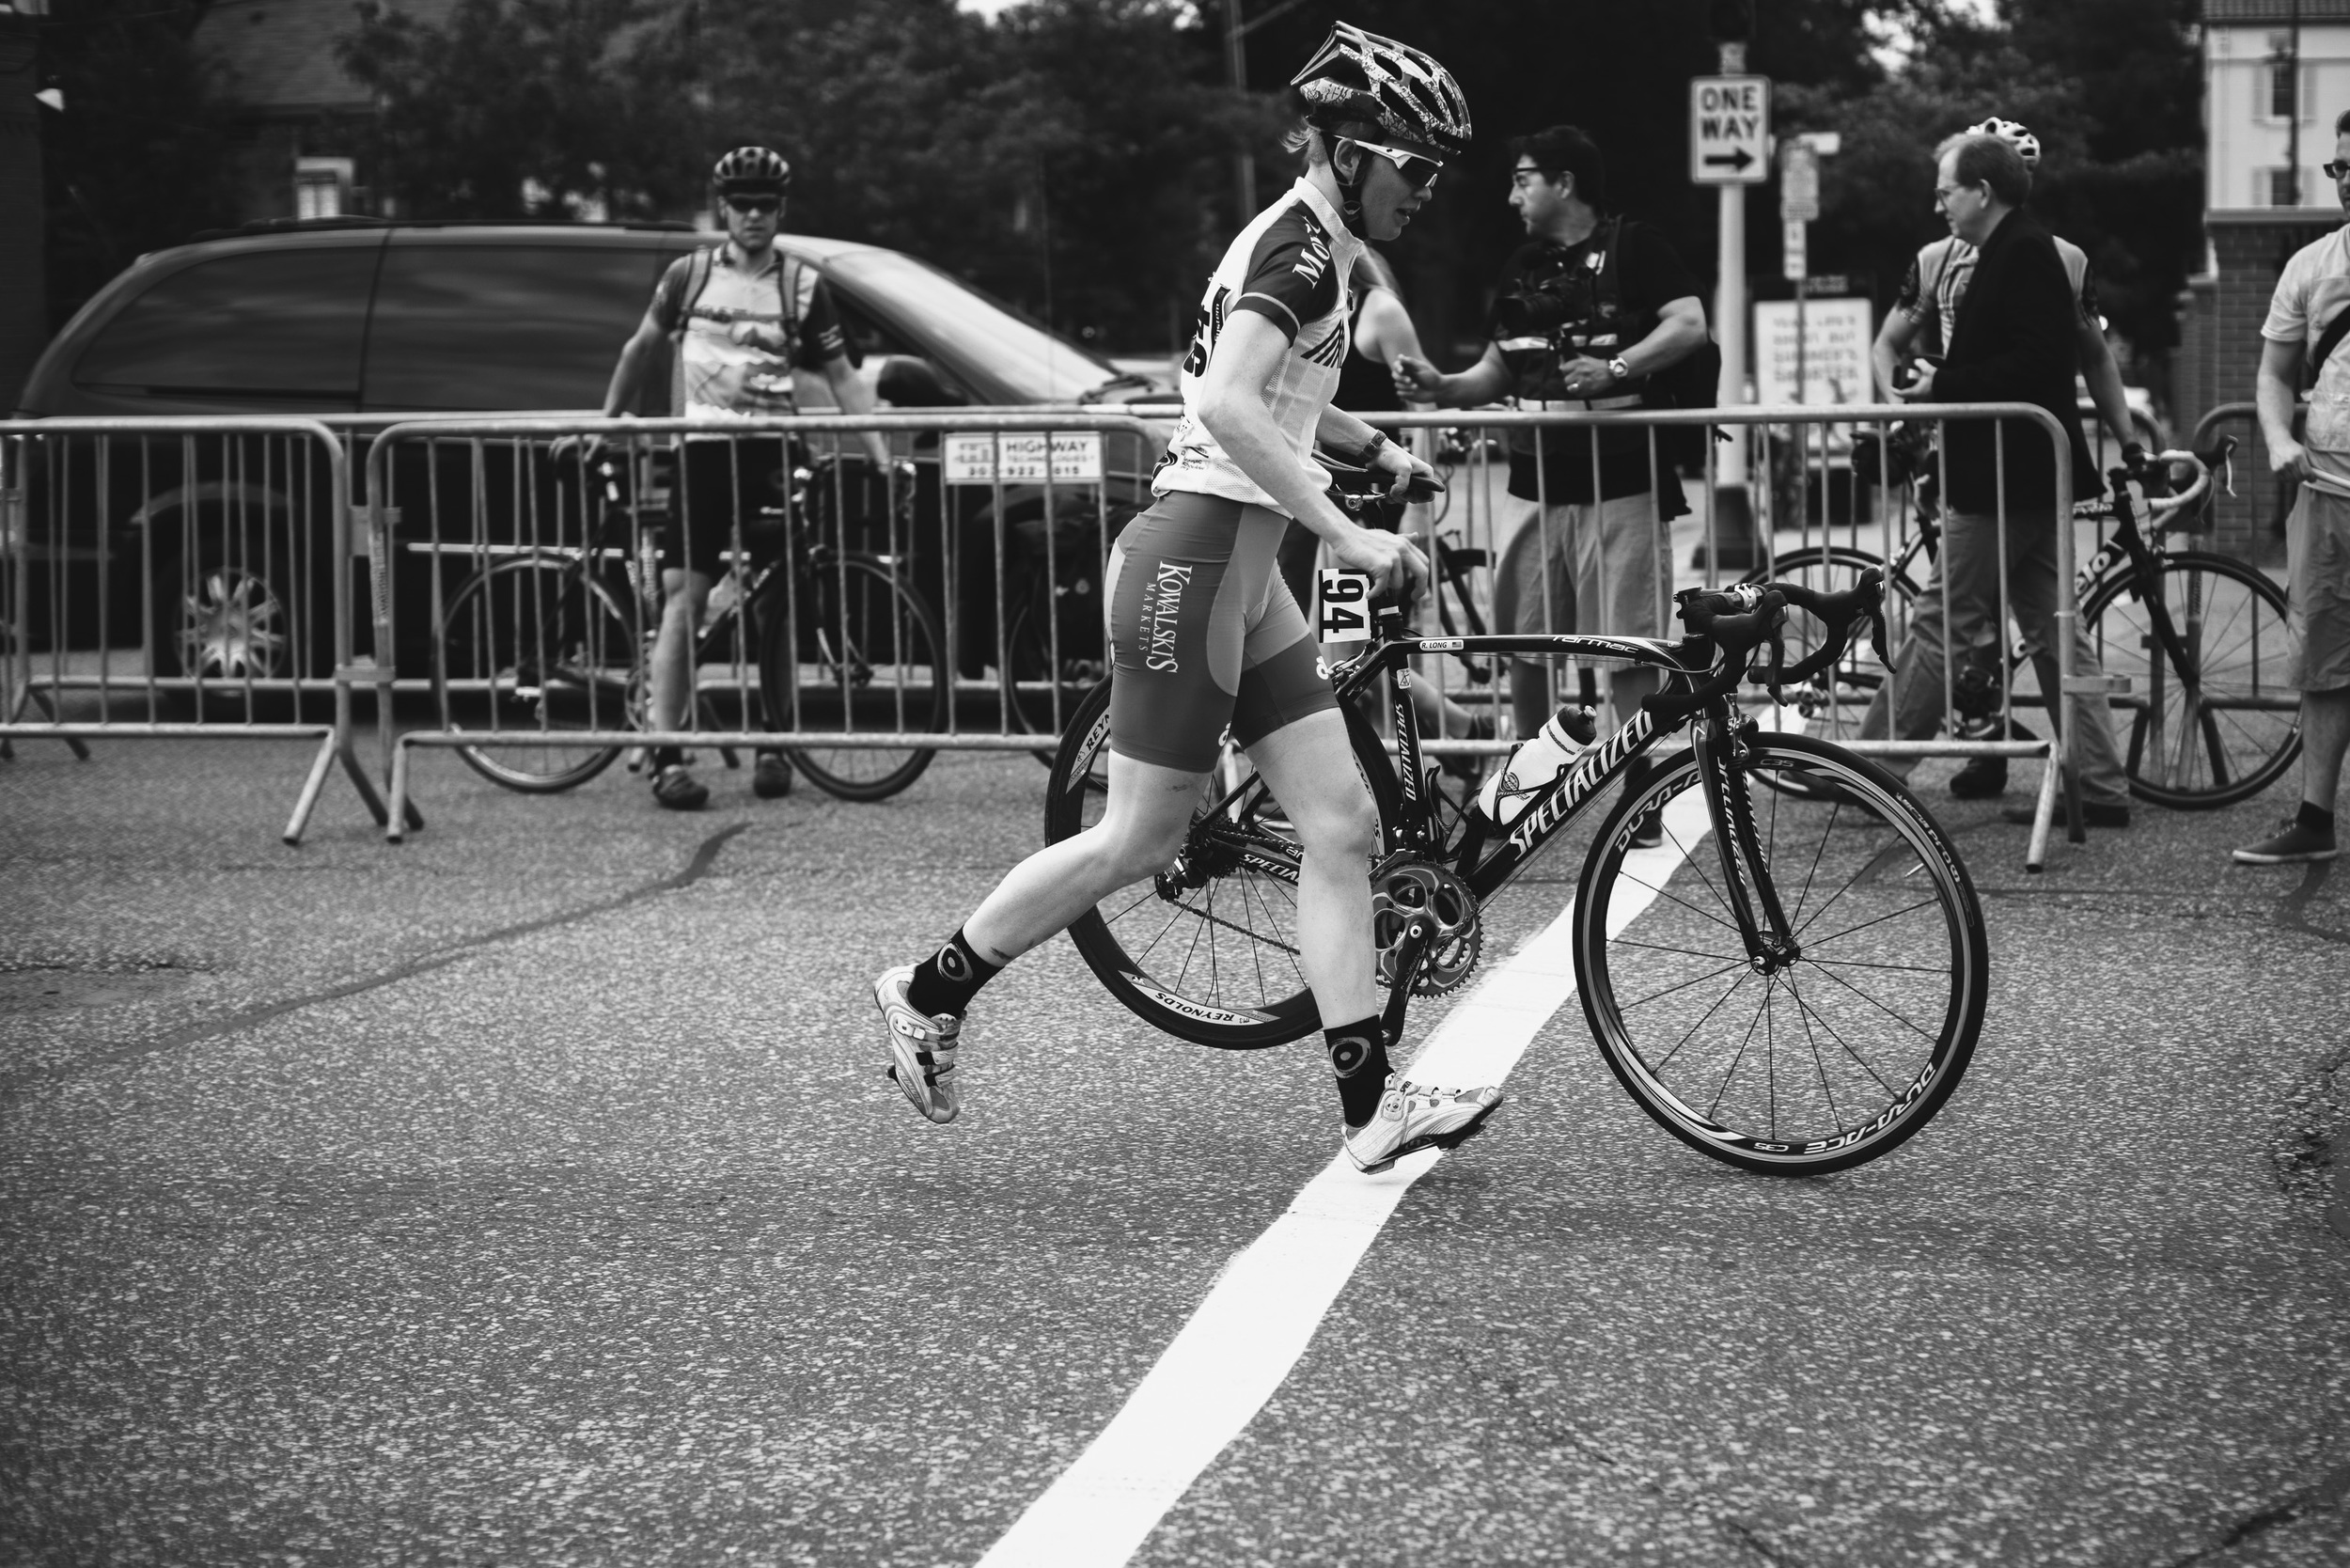 Rose Long, of theKowalski's Markets Collegiate All-Starsteam, runs her bike to the Shimano neutral support zone after a mechanical problem.